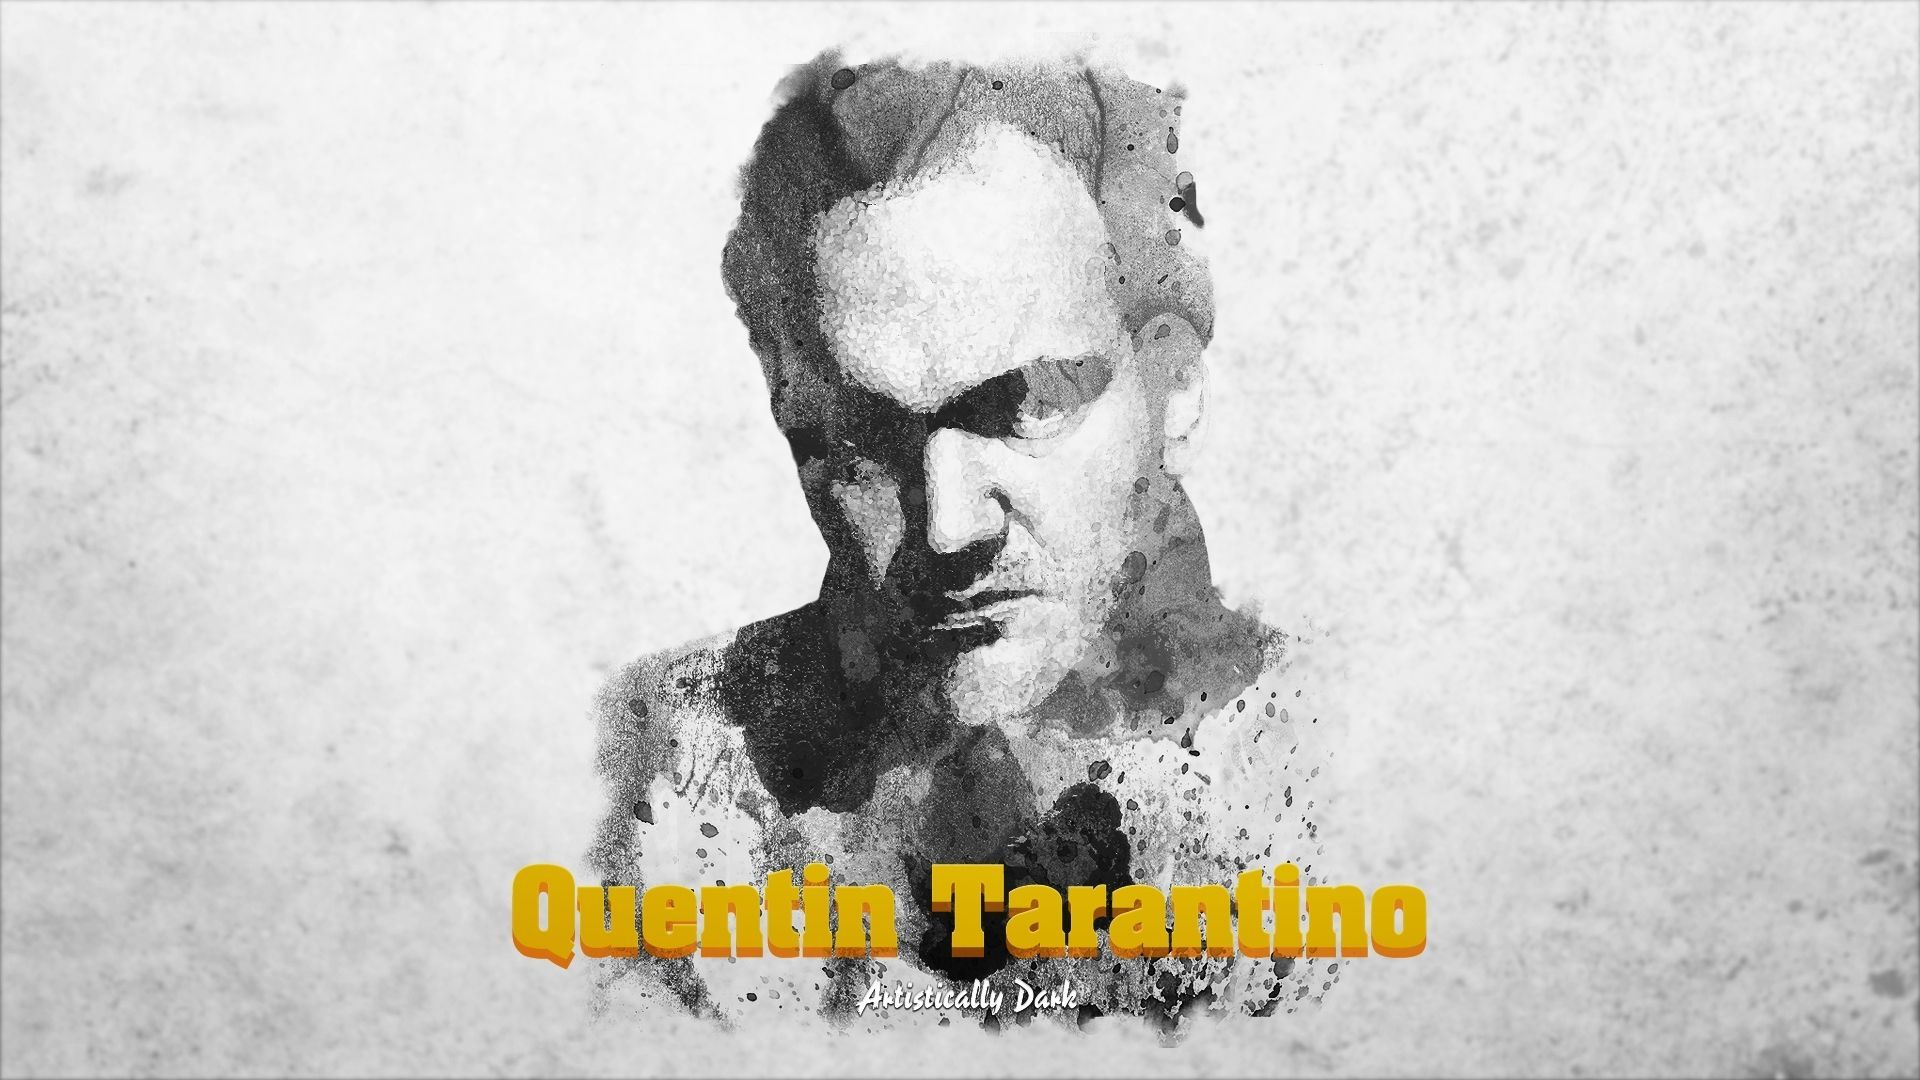 Quentin Tarantino Wallpapers Top Free Quentin Tarantino